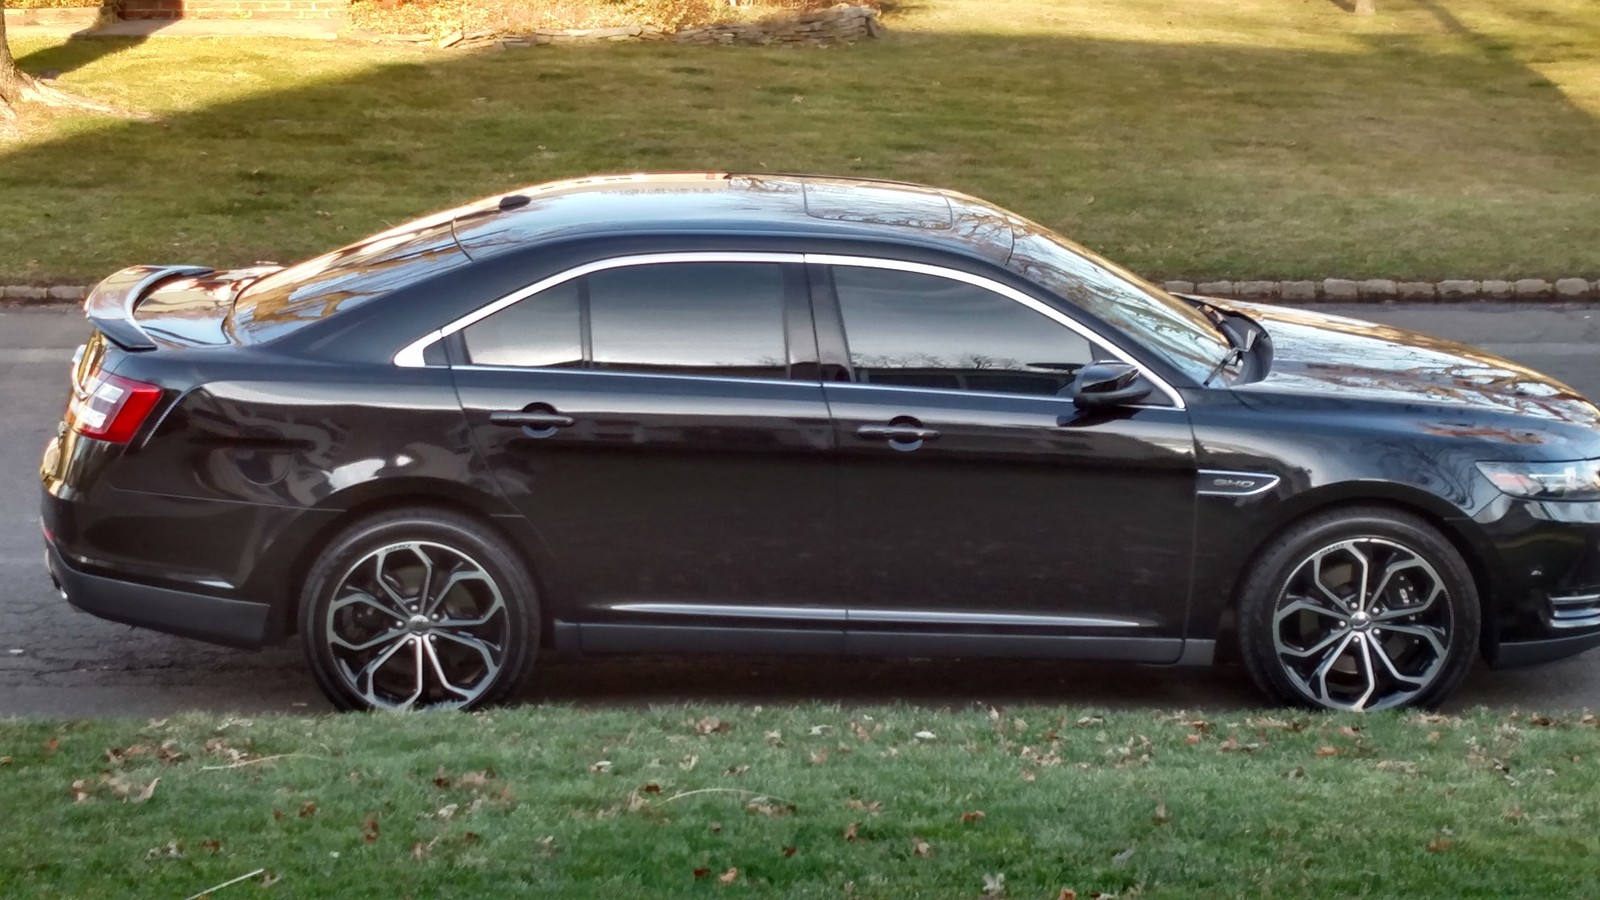 2013 black ford taurus sho picture mods upgrades